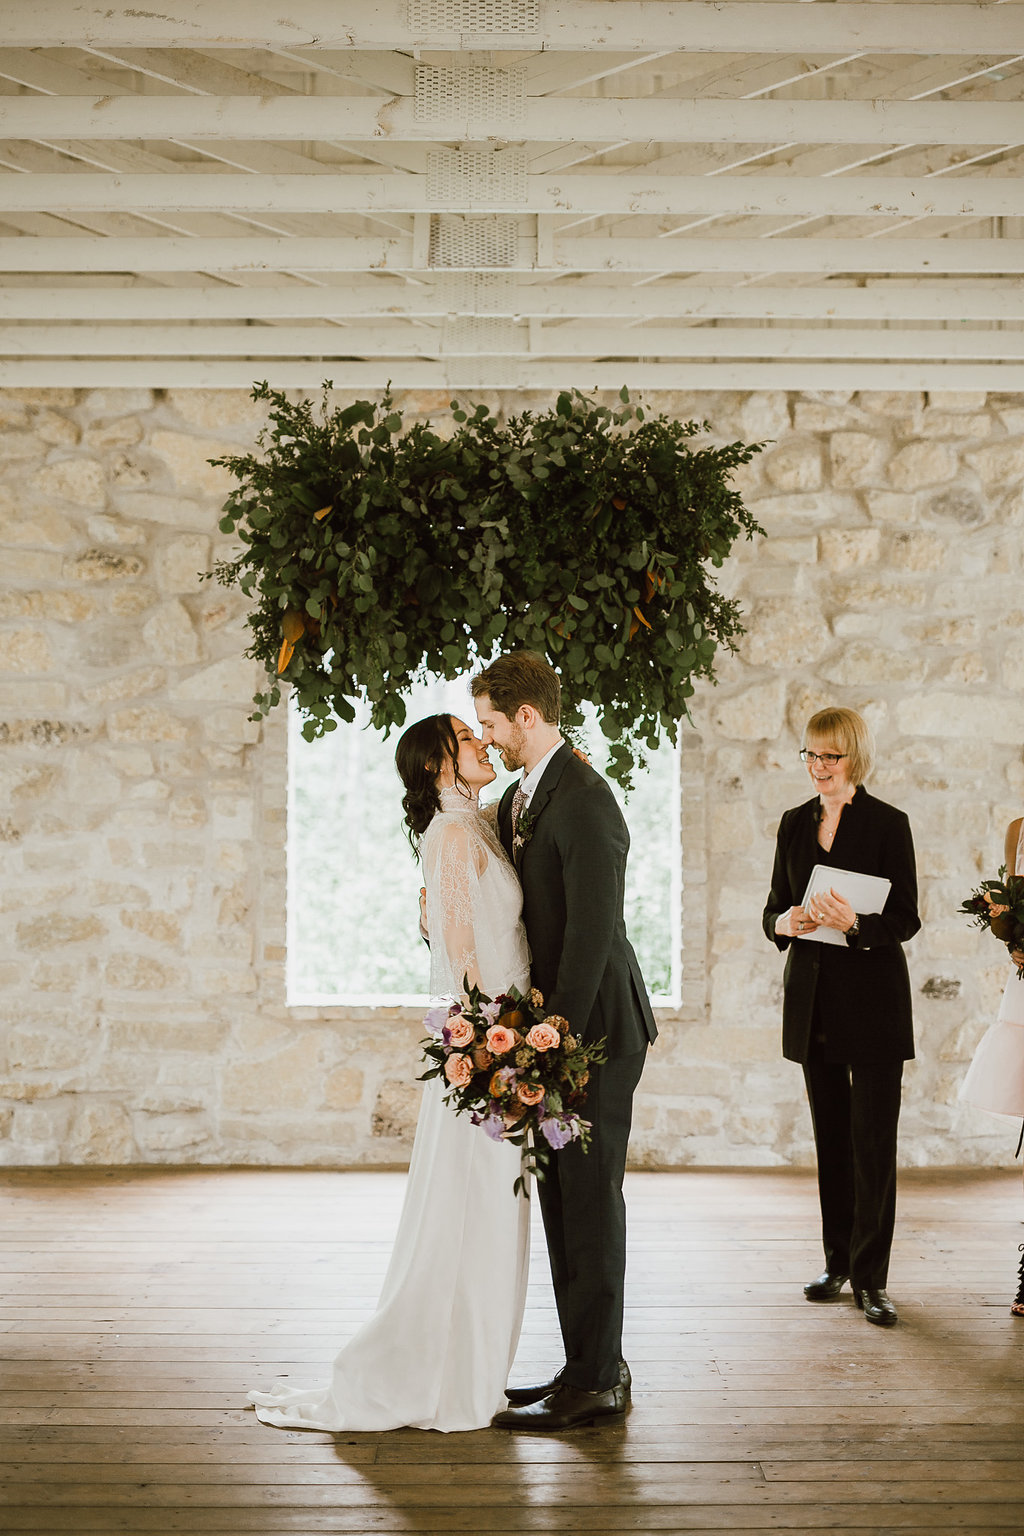 Stylish Wedding at Cielo's Garden - Winnipeg Wedding Florists